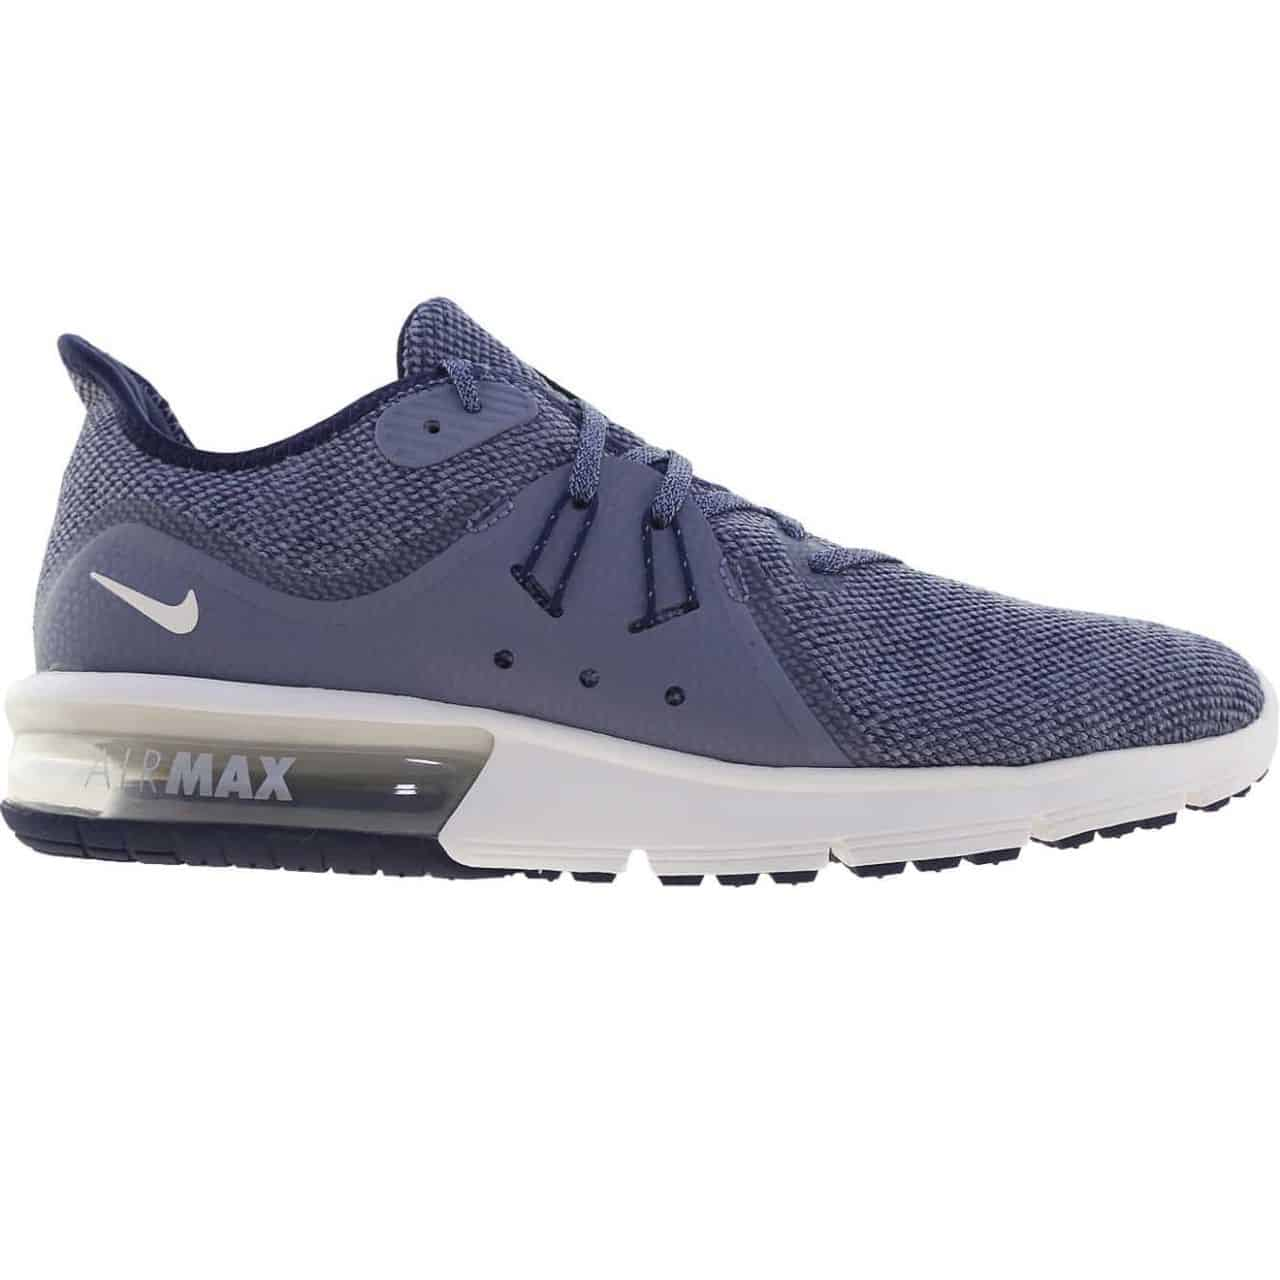 ADIDASI ORIGINALI NIKE AIR MAX SEQUENT 3 - 921694 402